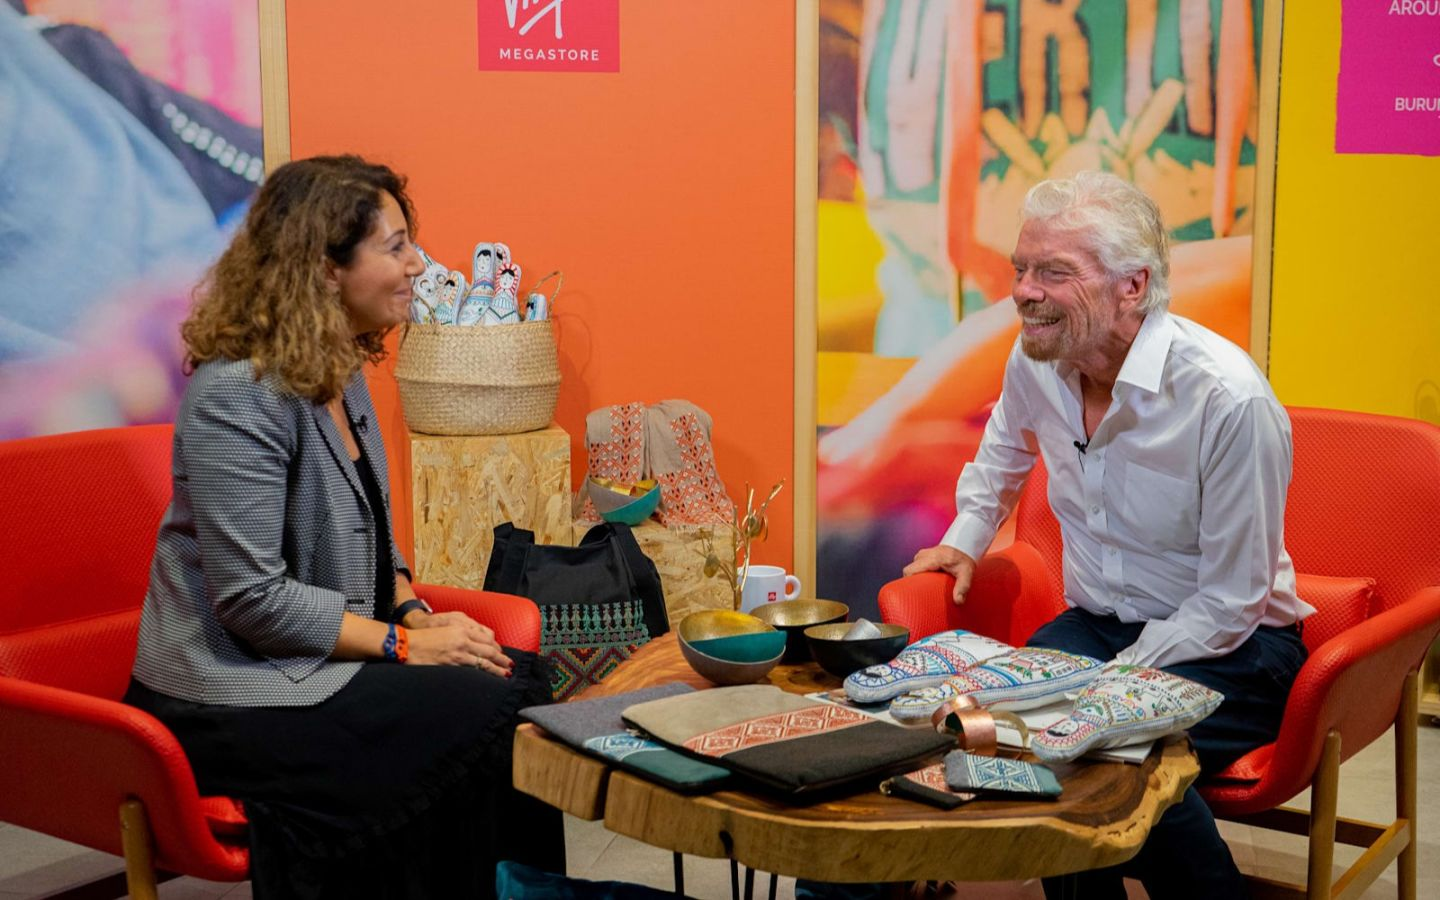 Richard Branson sat down with a lady laughing with a table of stock in front of them for Virgin Megastore in Dubai